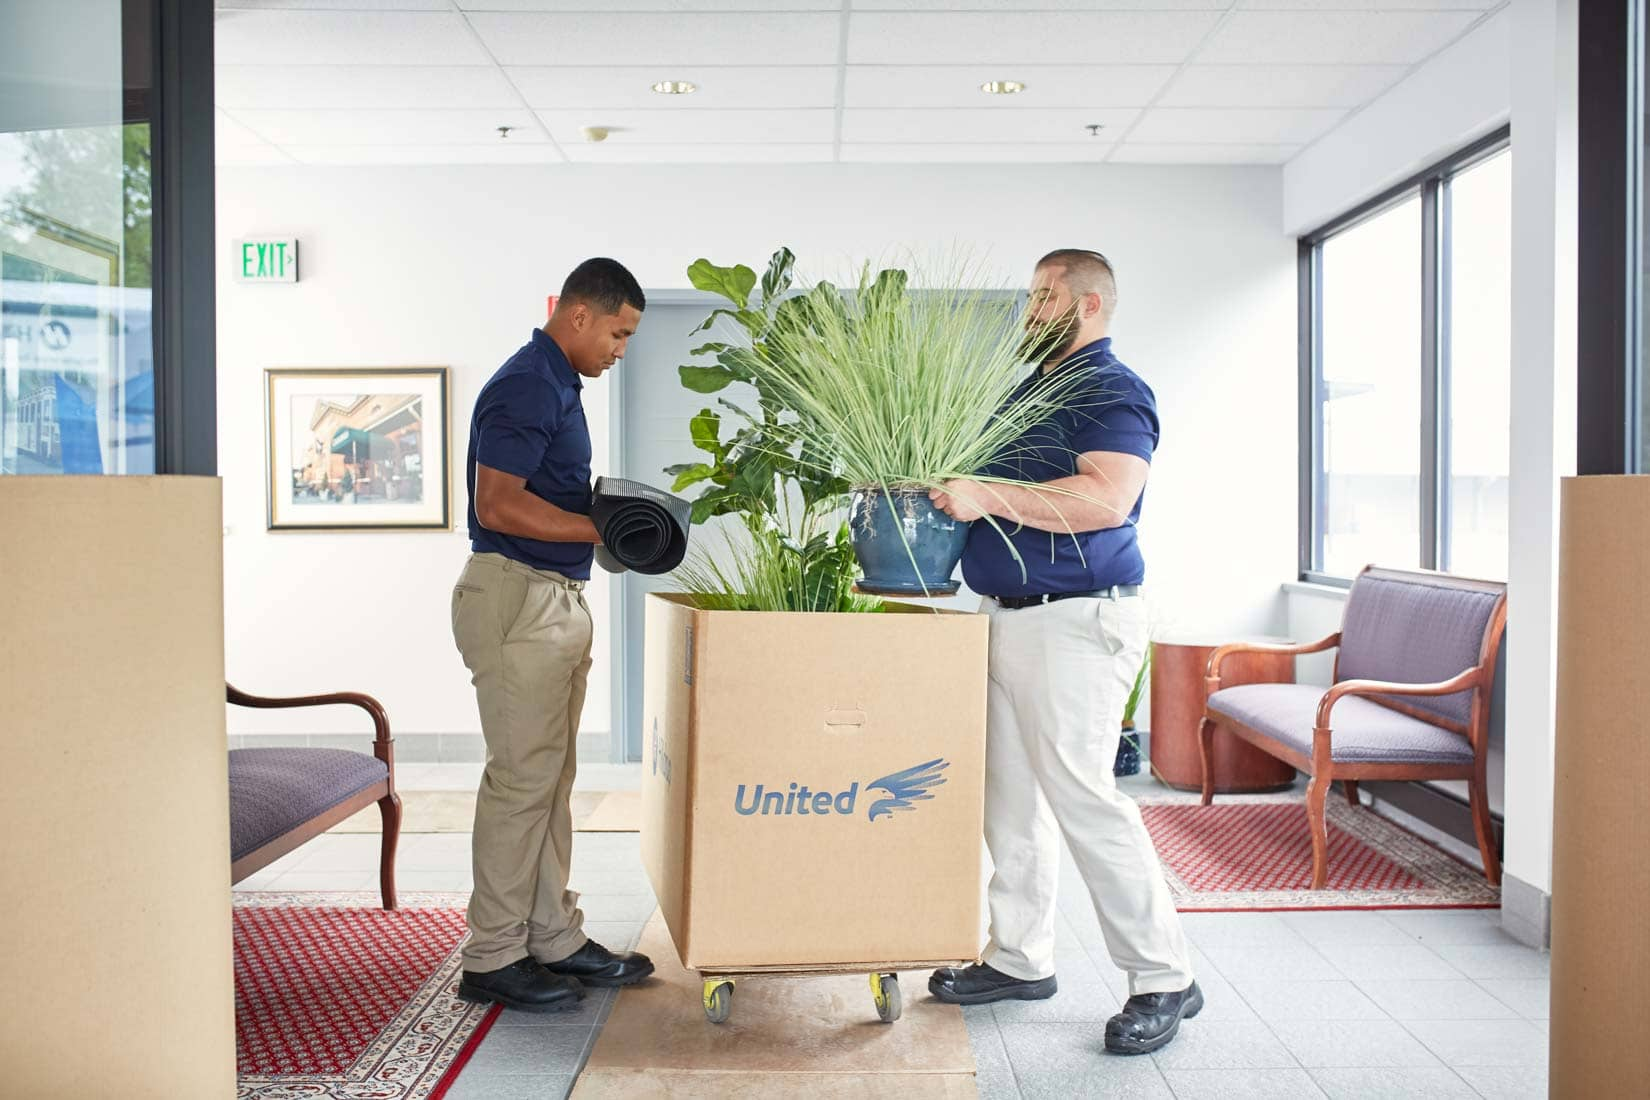 Hilldrup employees packing office items into a box